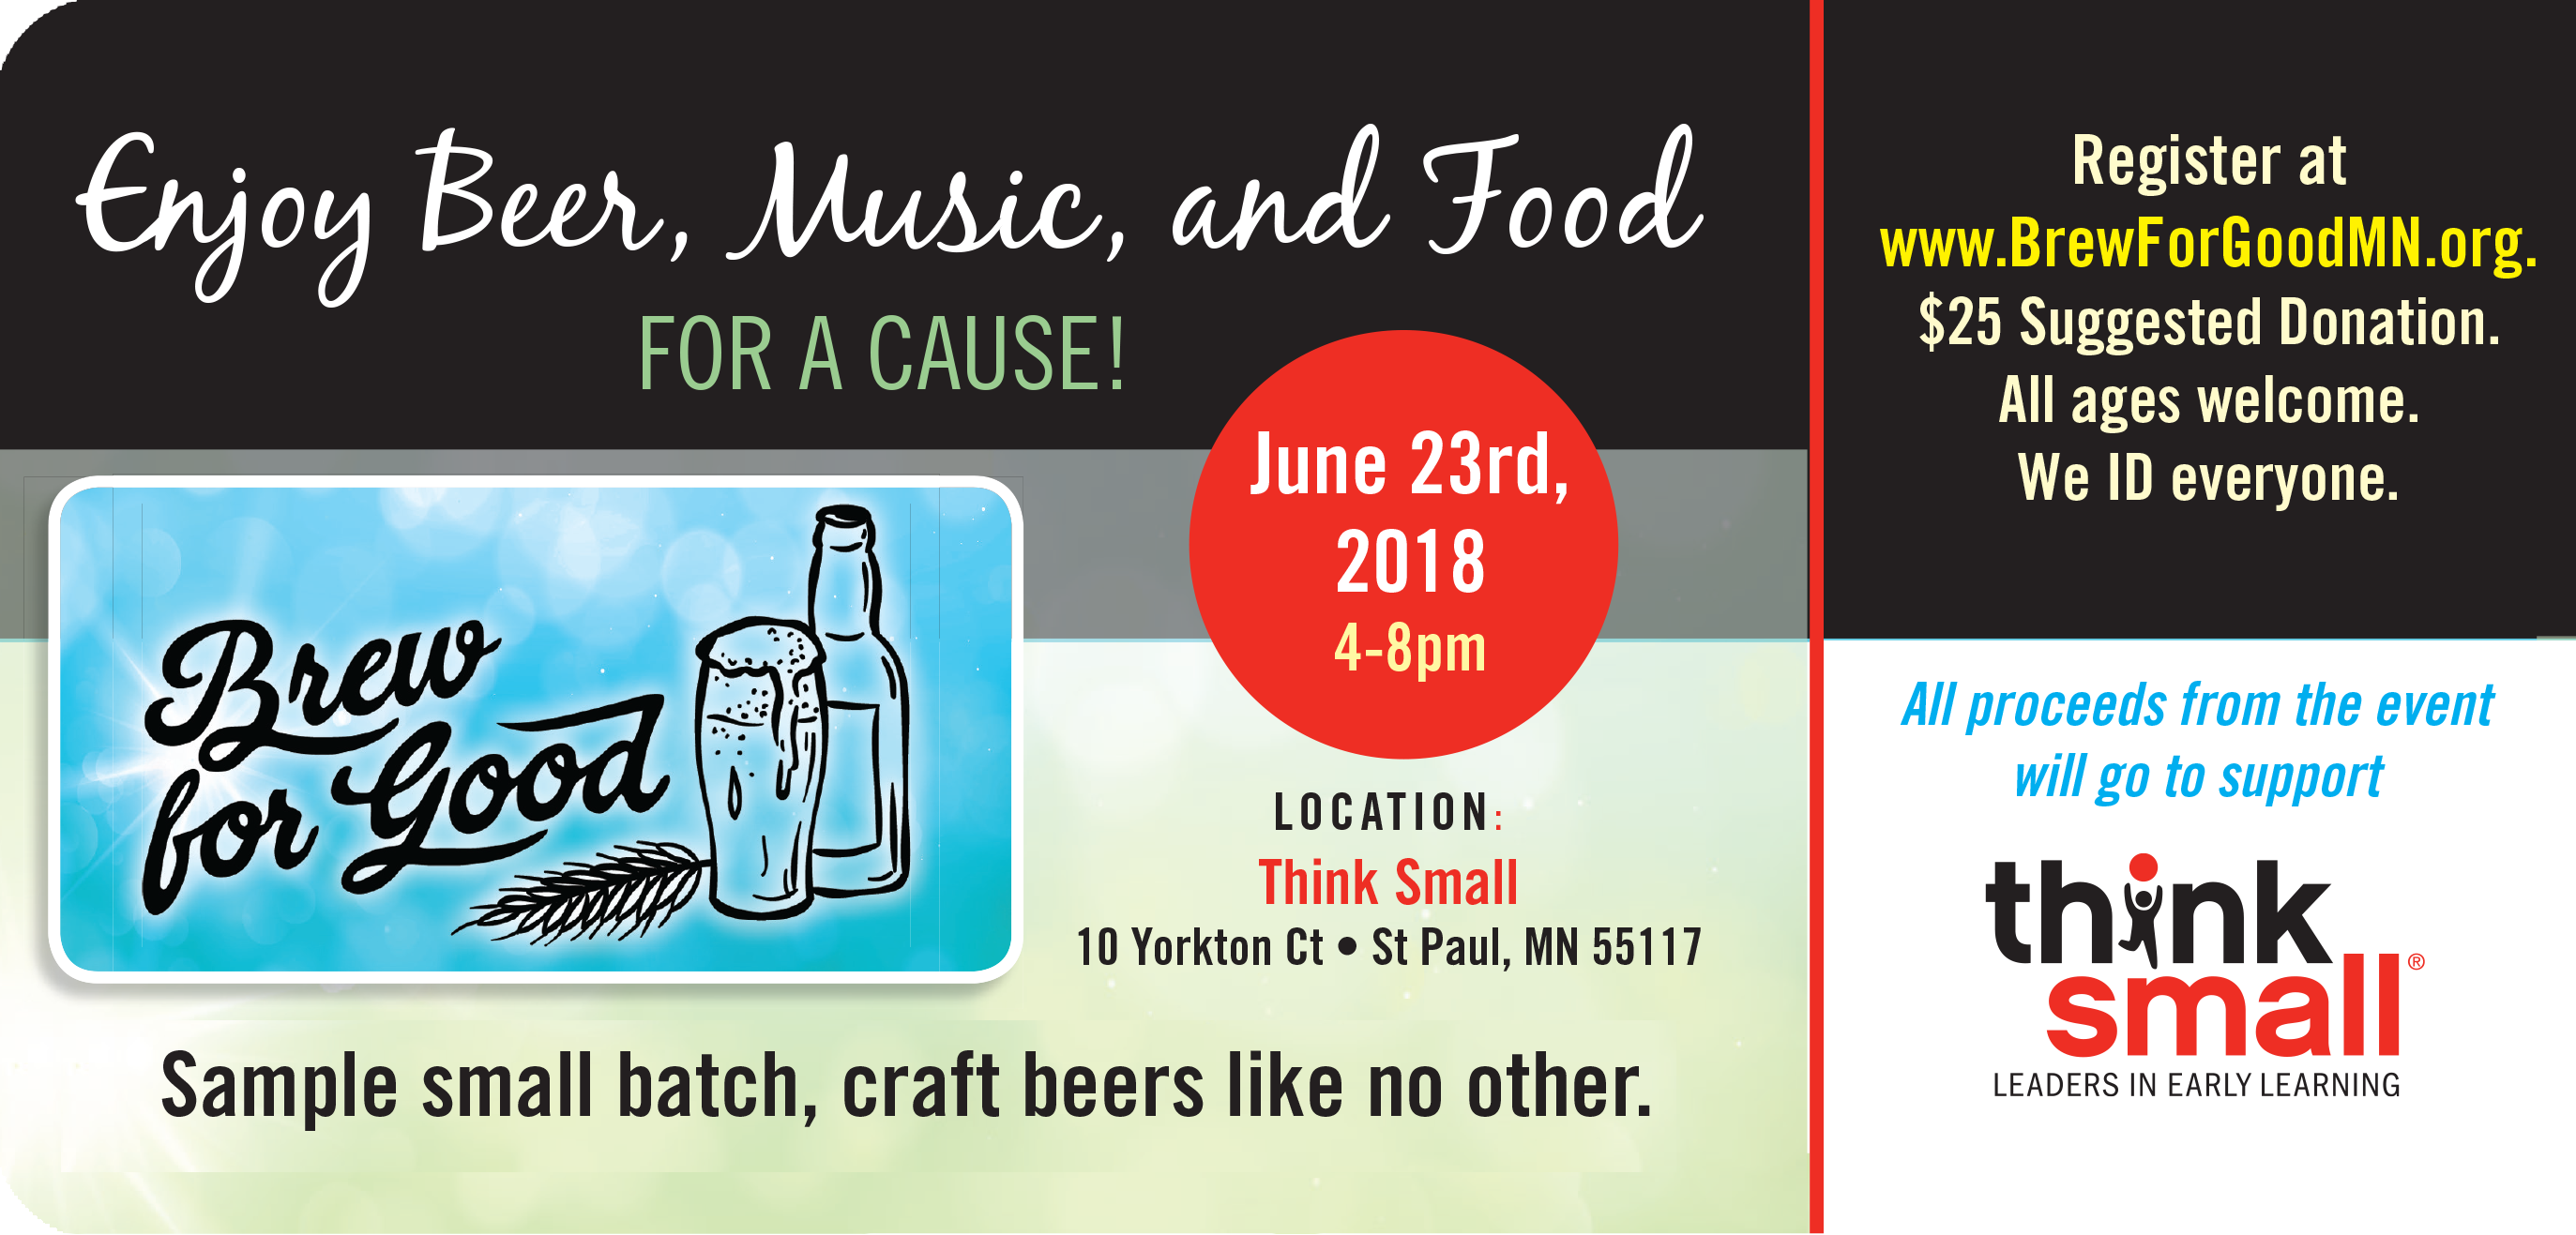 Brew for Good -- Enjoy Beer, Music, and Food